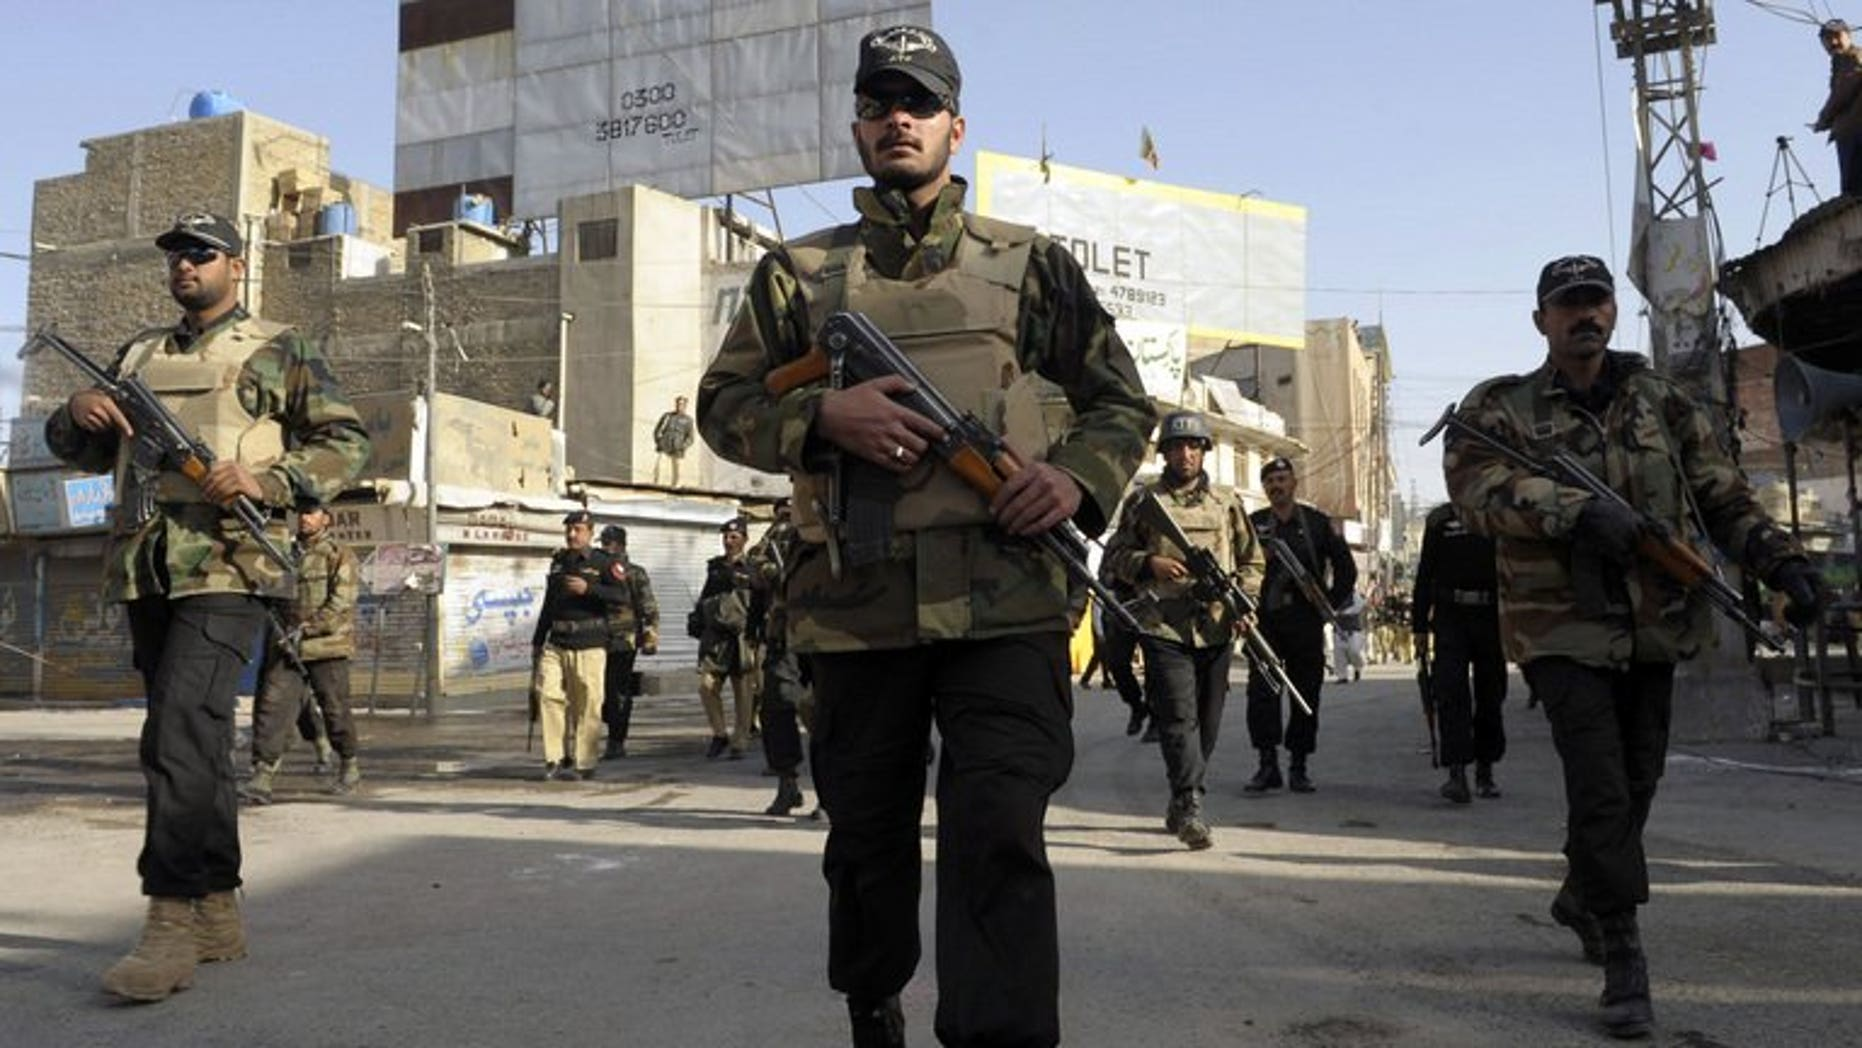 Pakistani police commandos patrol during a Shiite Muslim Ashura procession in Quetta on December 6, 2011. A bomb planted on a bicycle killed at least two people and wounded another in the restive province of Baluchistan in southwest Pakistan on Monday, officials said.